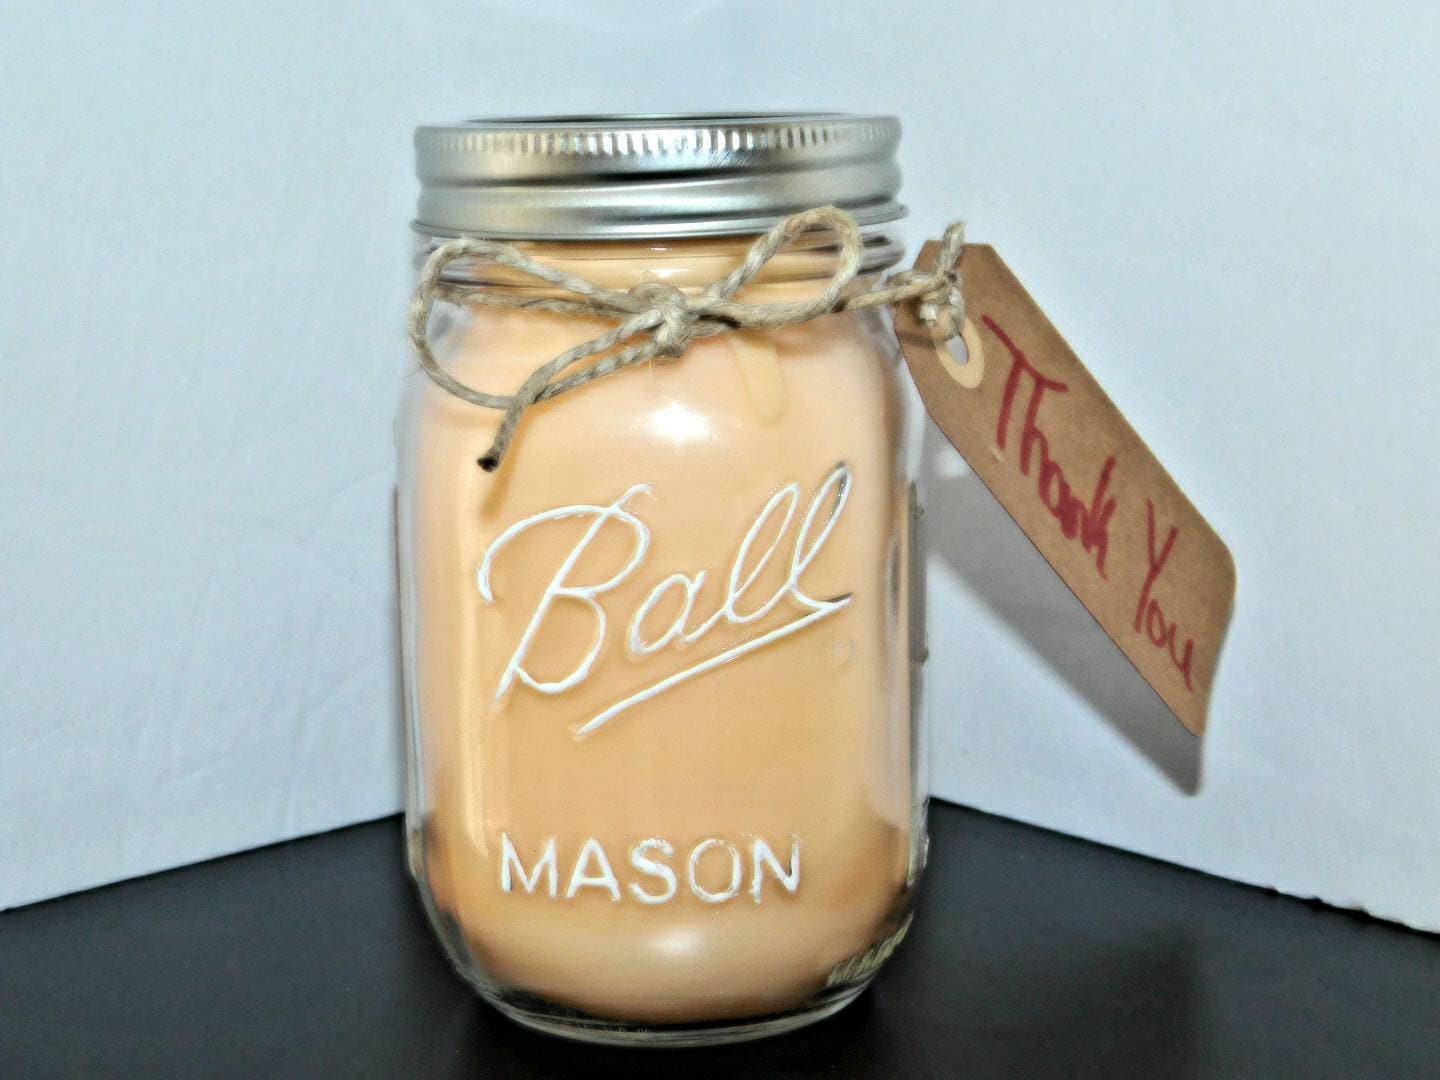 Thank You Mason Jar Candles Sweet Scented Candles Extra Scented Soy Blend Mood Candles Colorful Gift Ideas Vanilla Orange